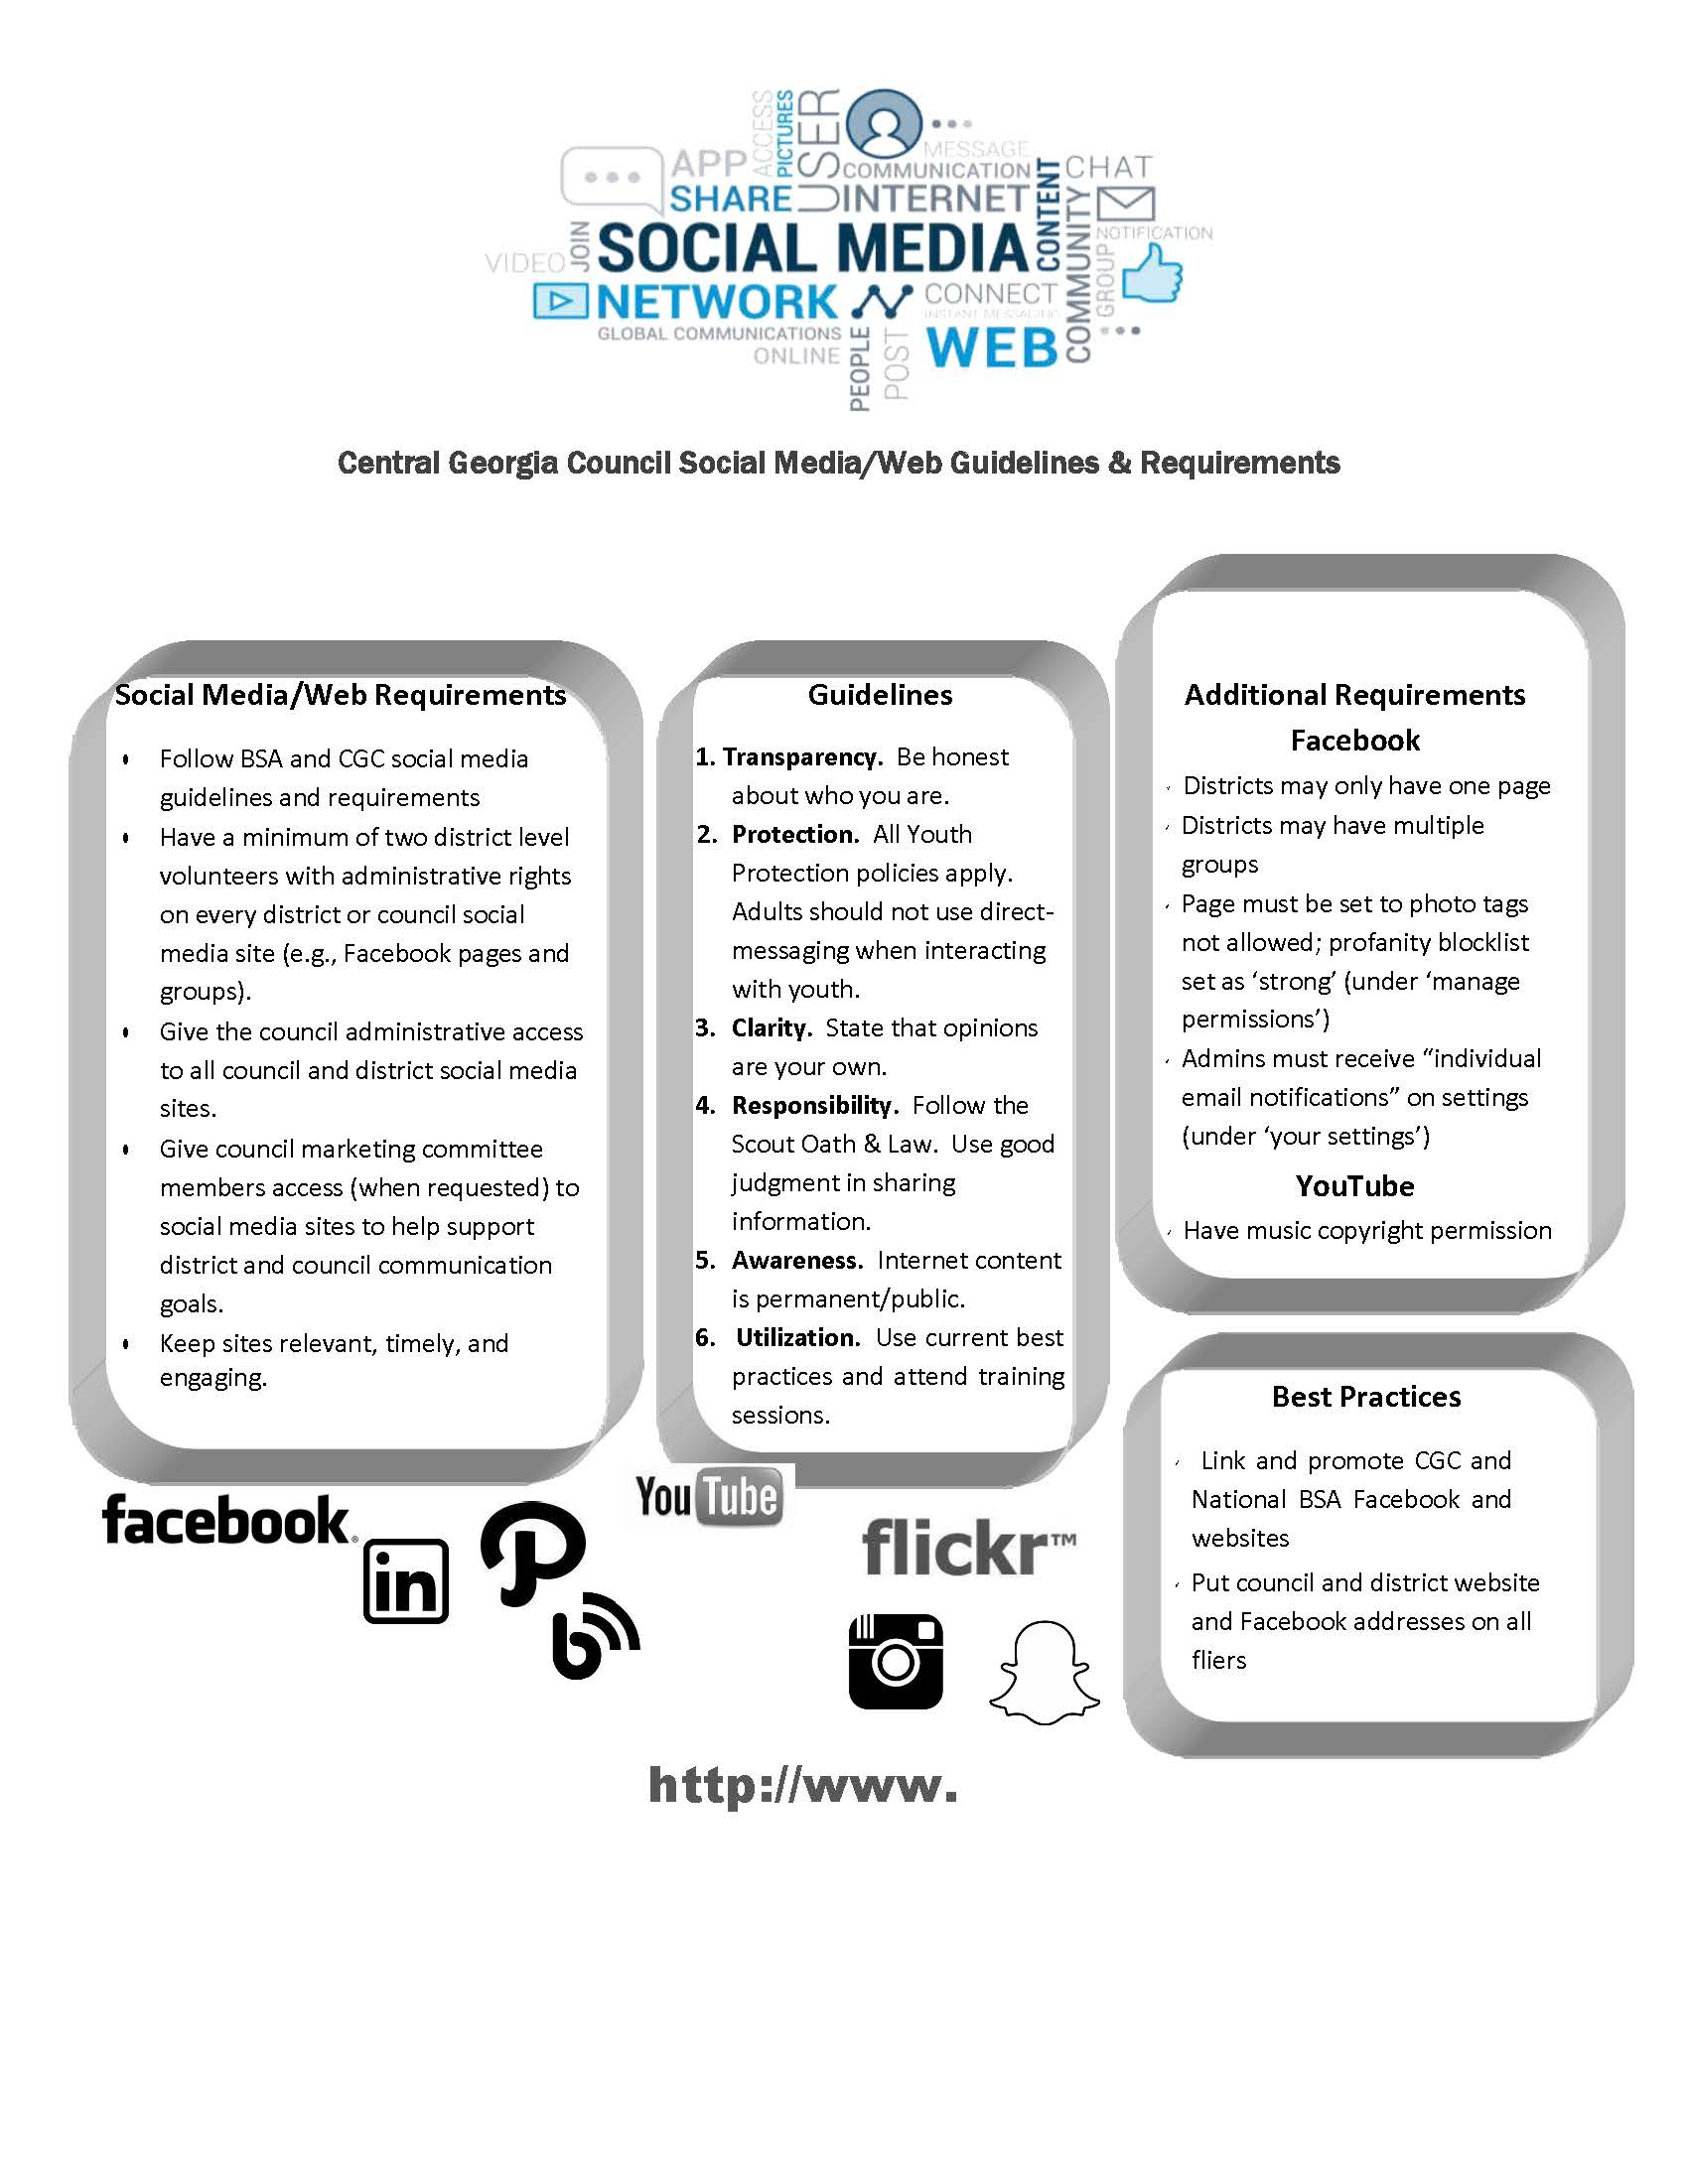 CGC Social Media/Web Requirements & Guidelines